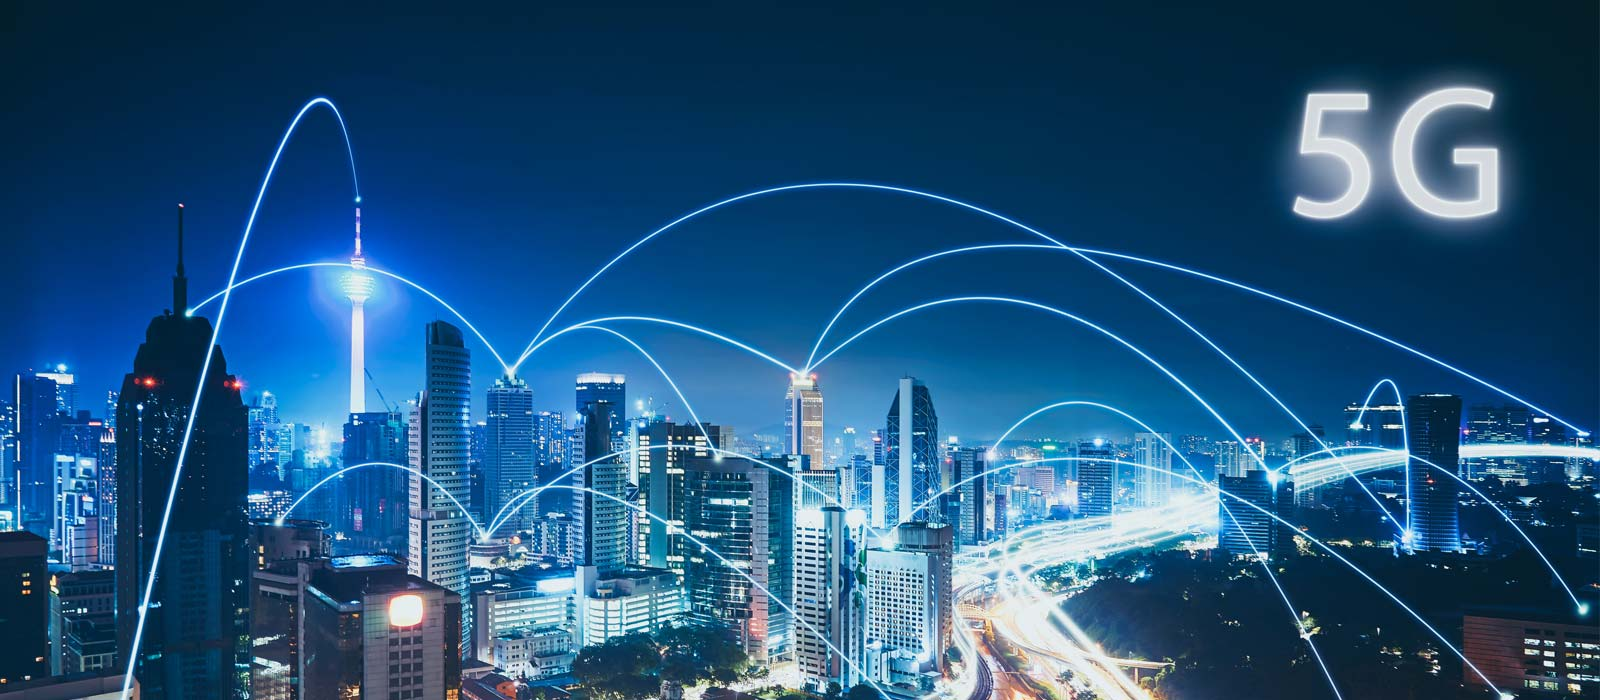 5G Will Enable IoT